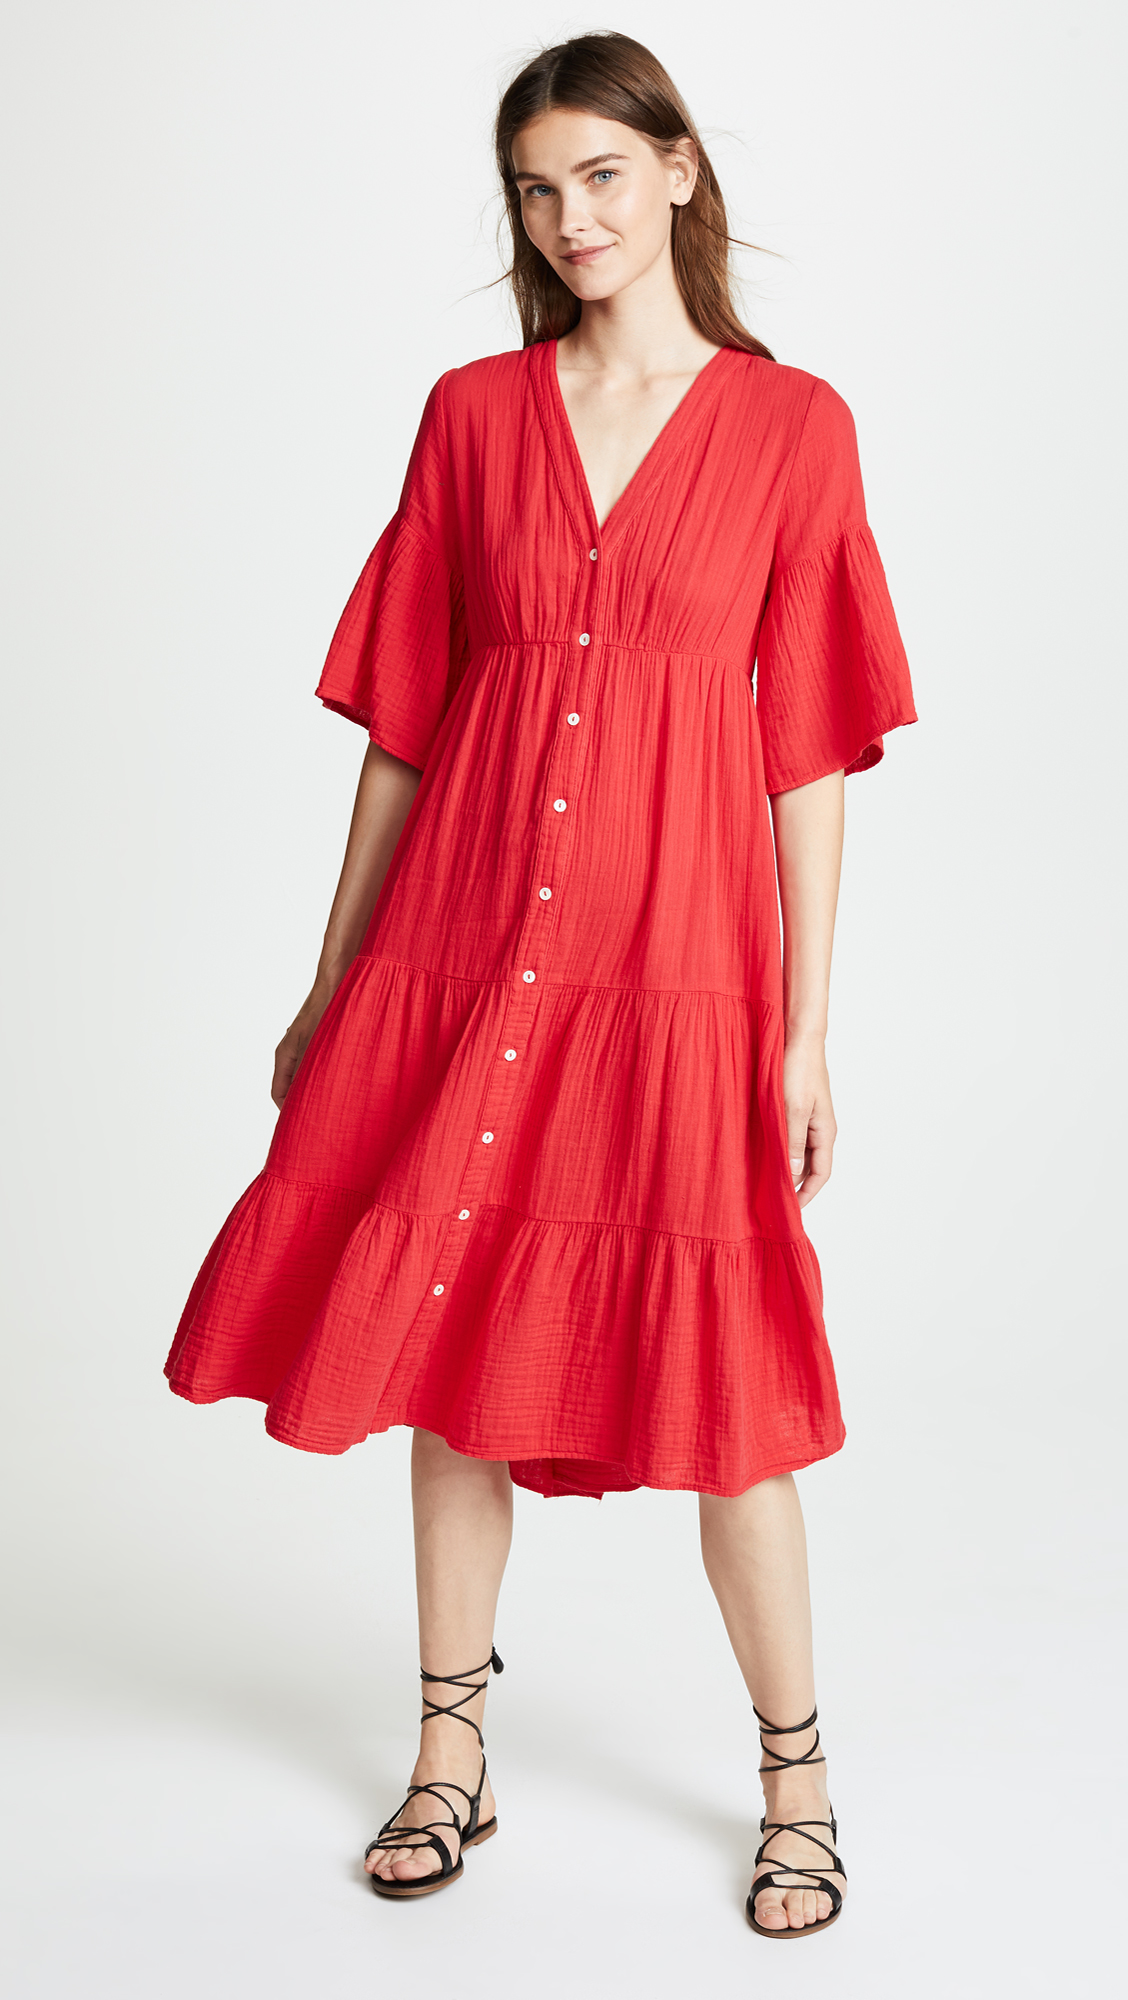 Red Button-Up Dress